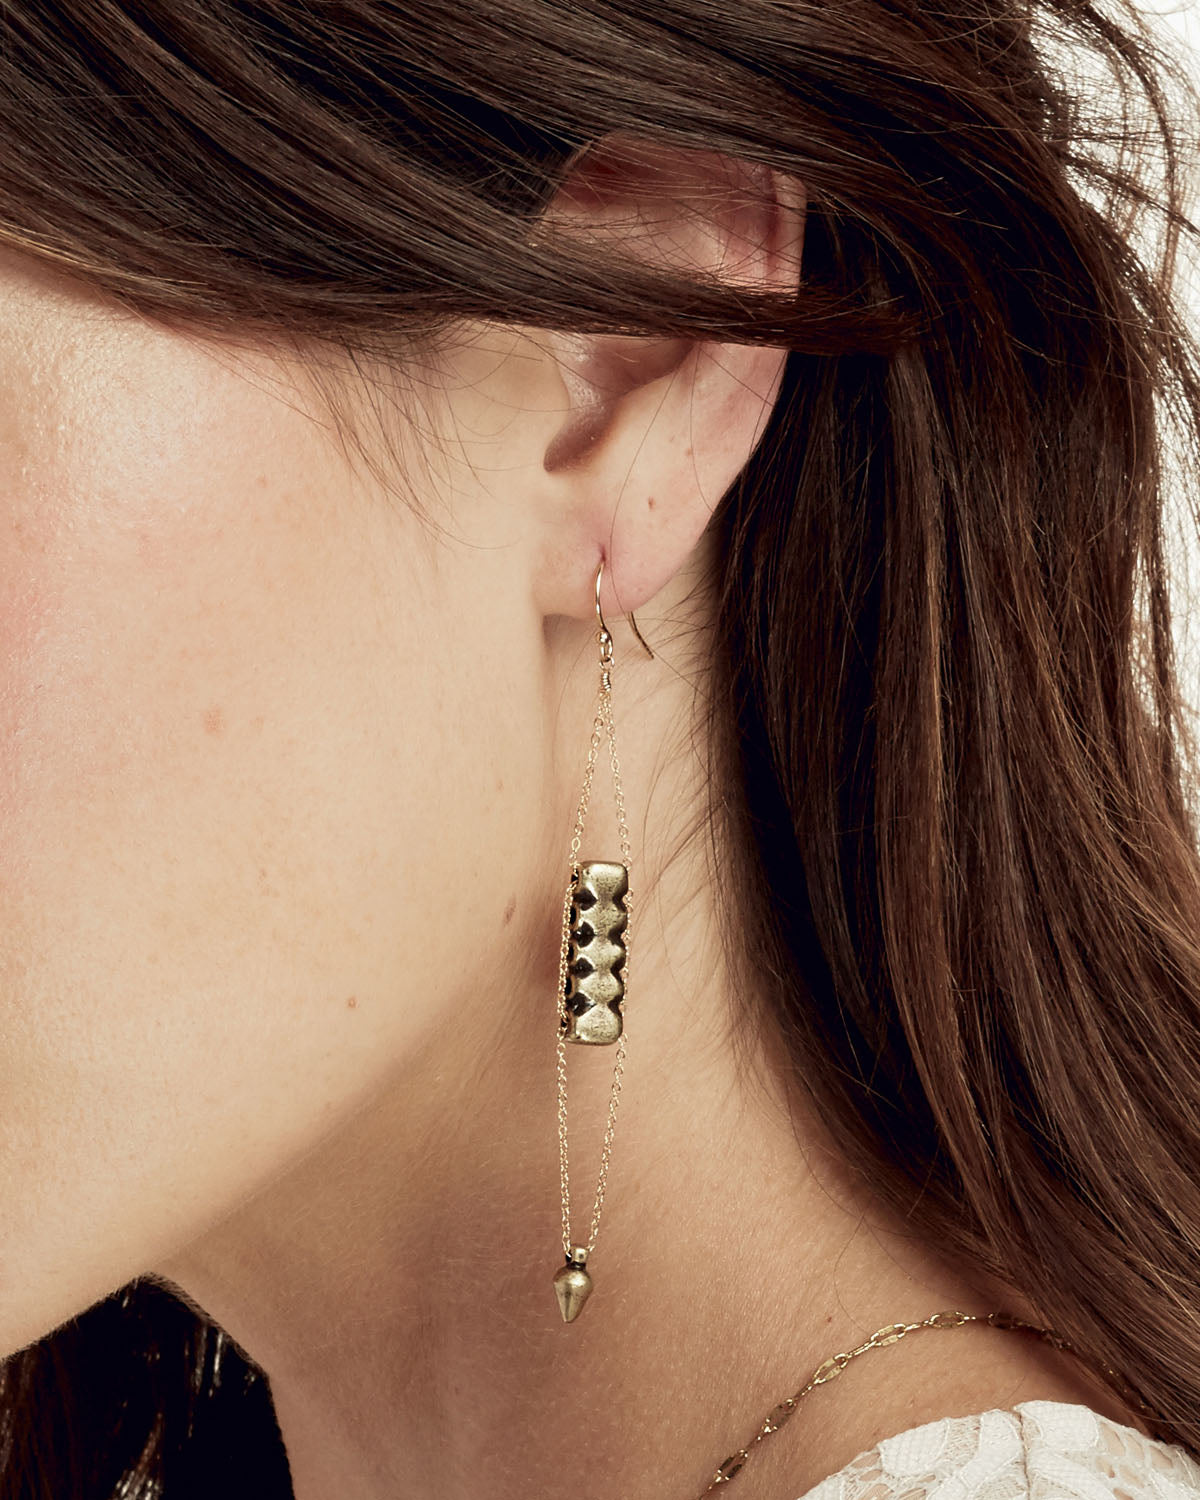 The Bow And Arrow Gold Earrings